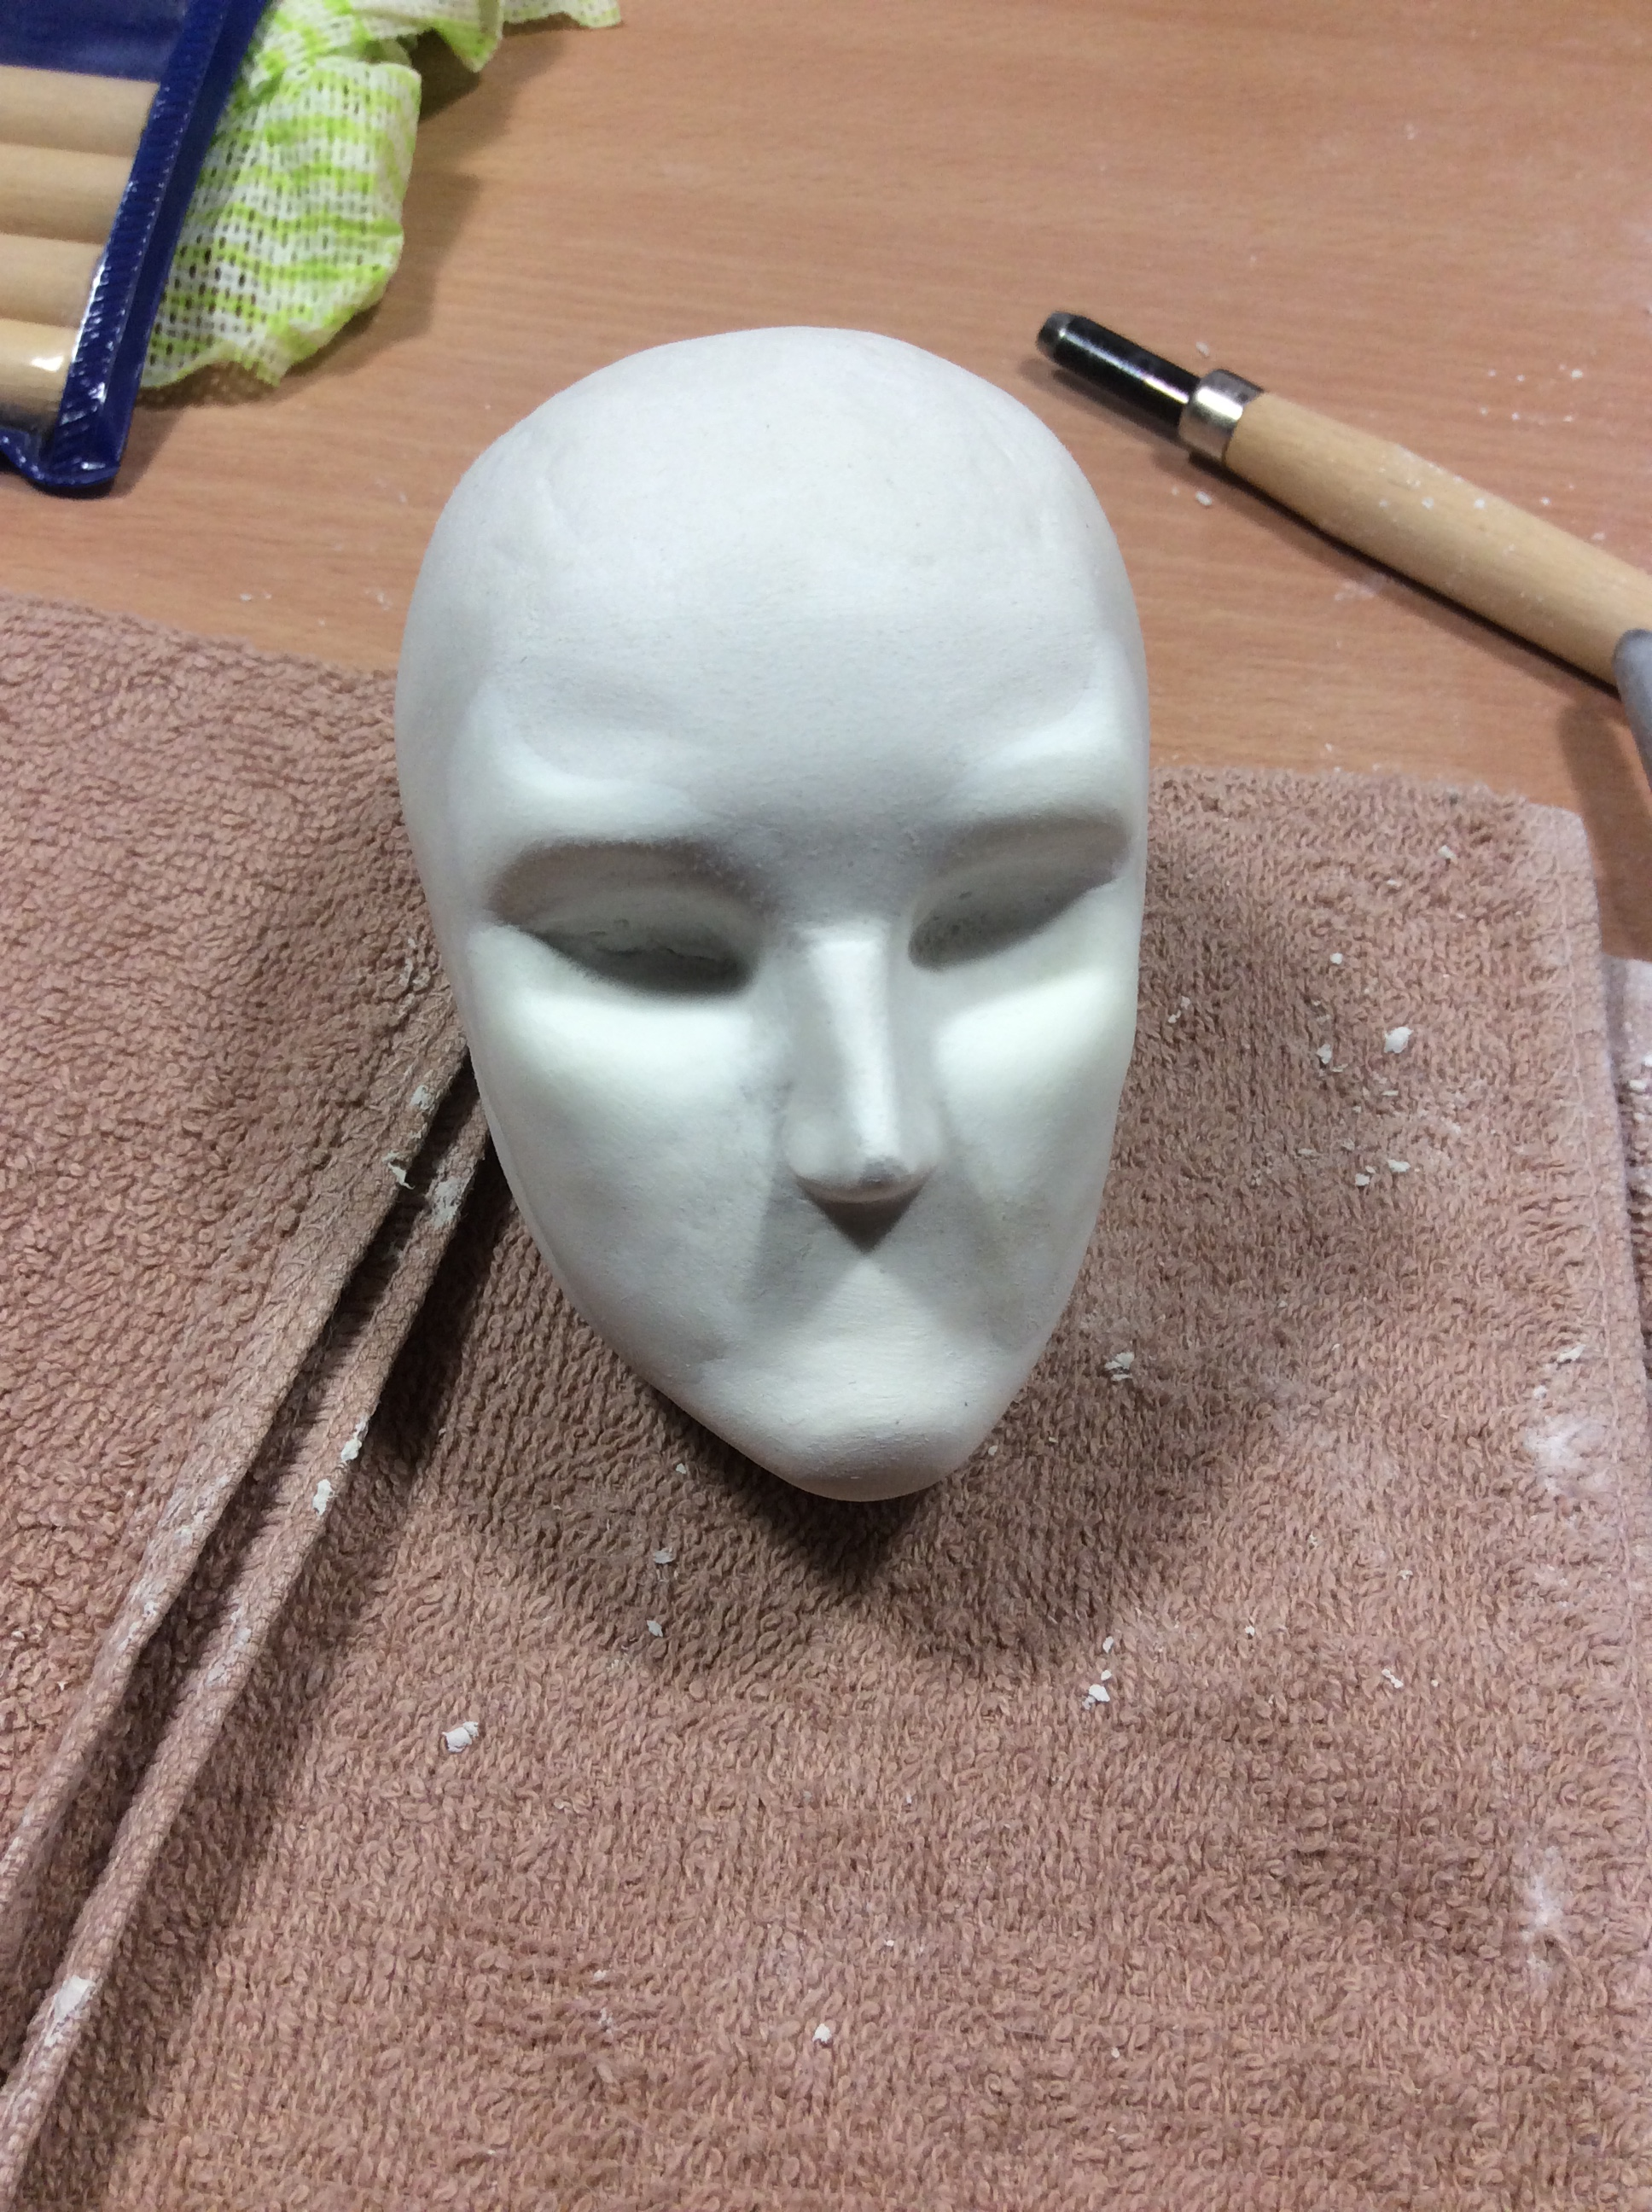 jemse---my-first-doll-head-making-progress-diary-part-2_32263279722_o